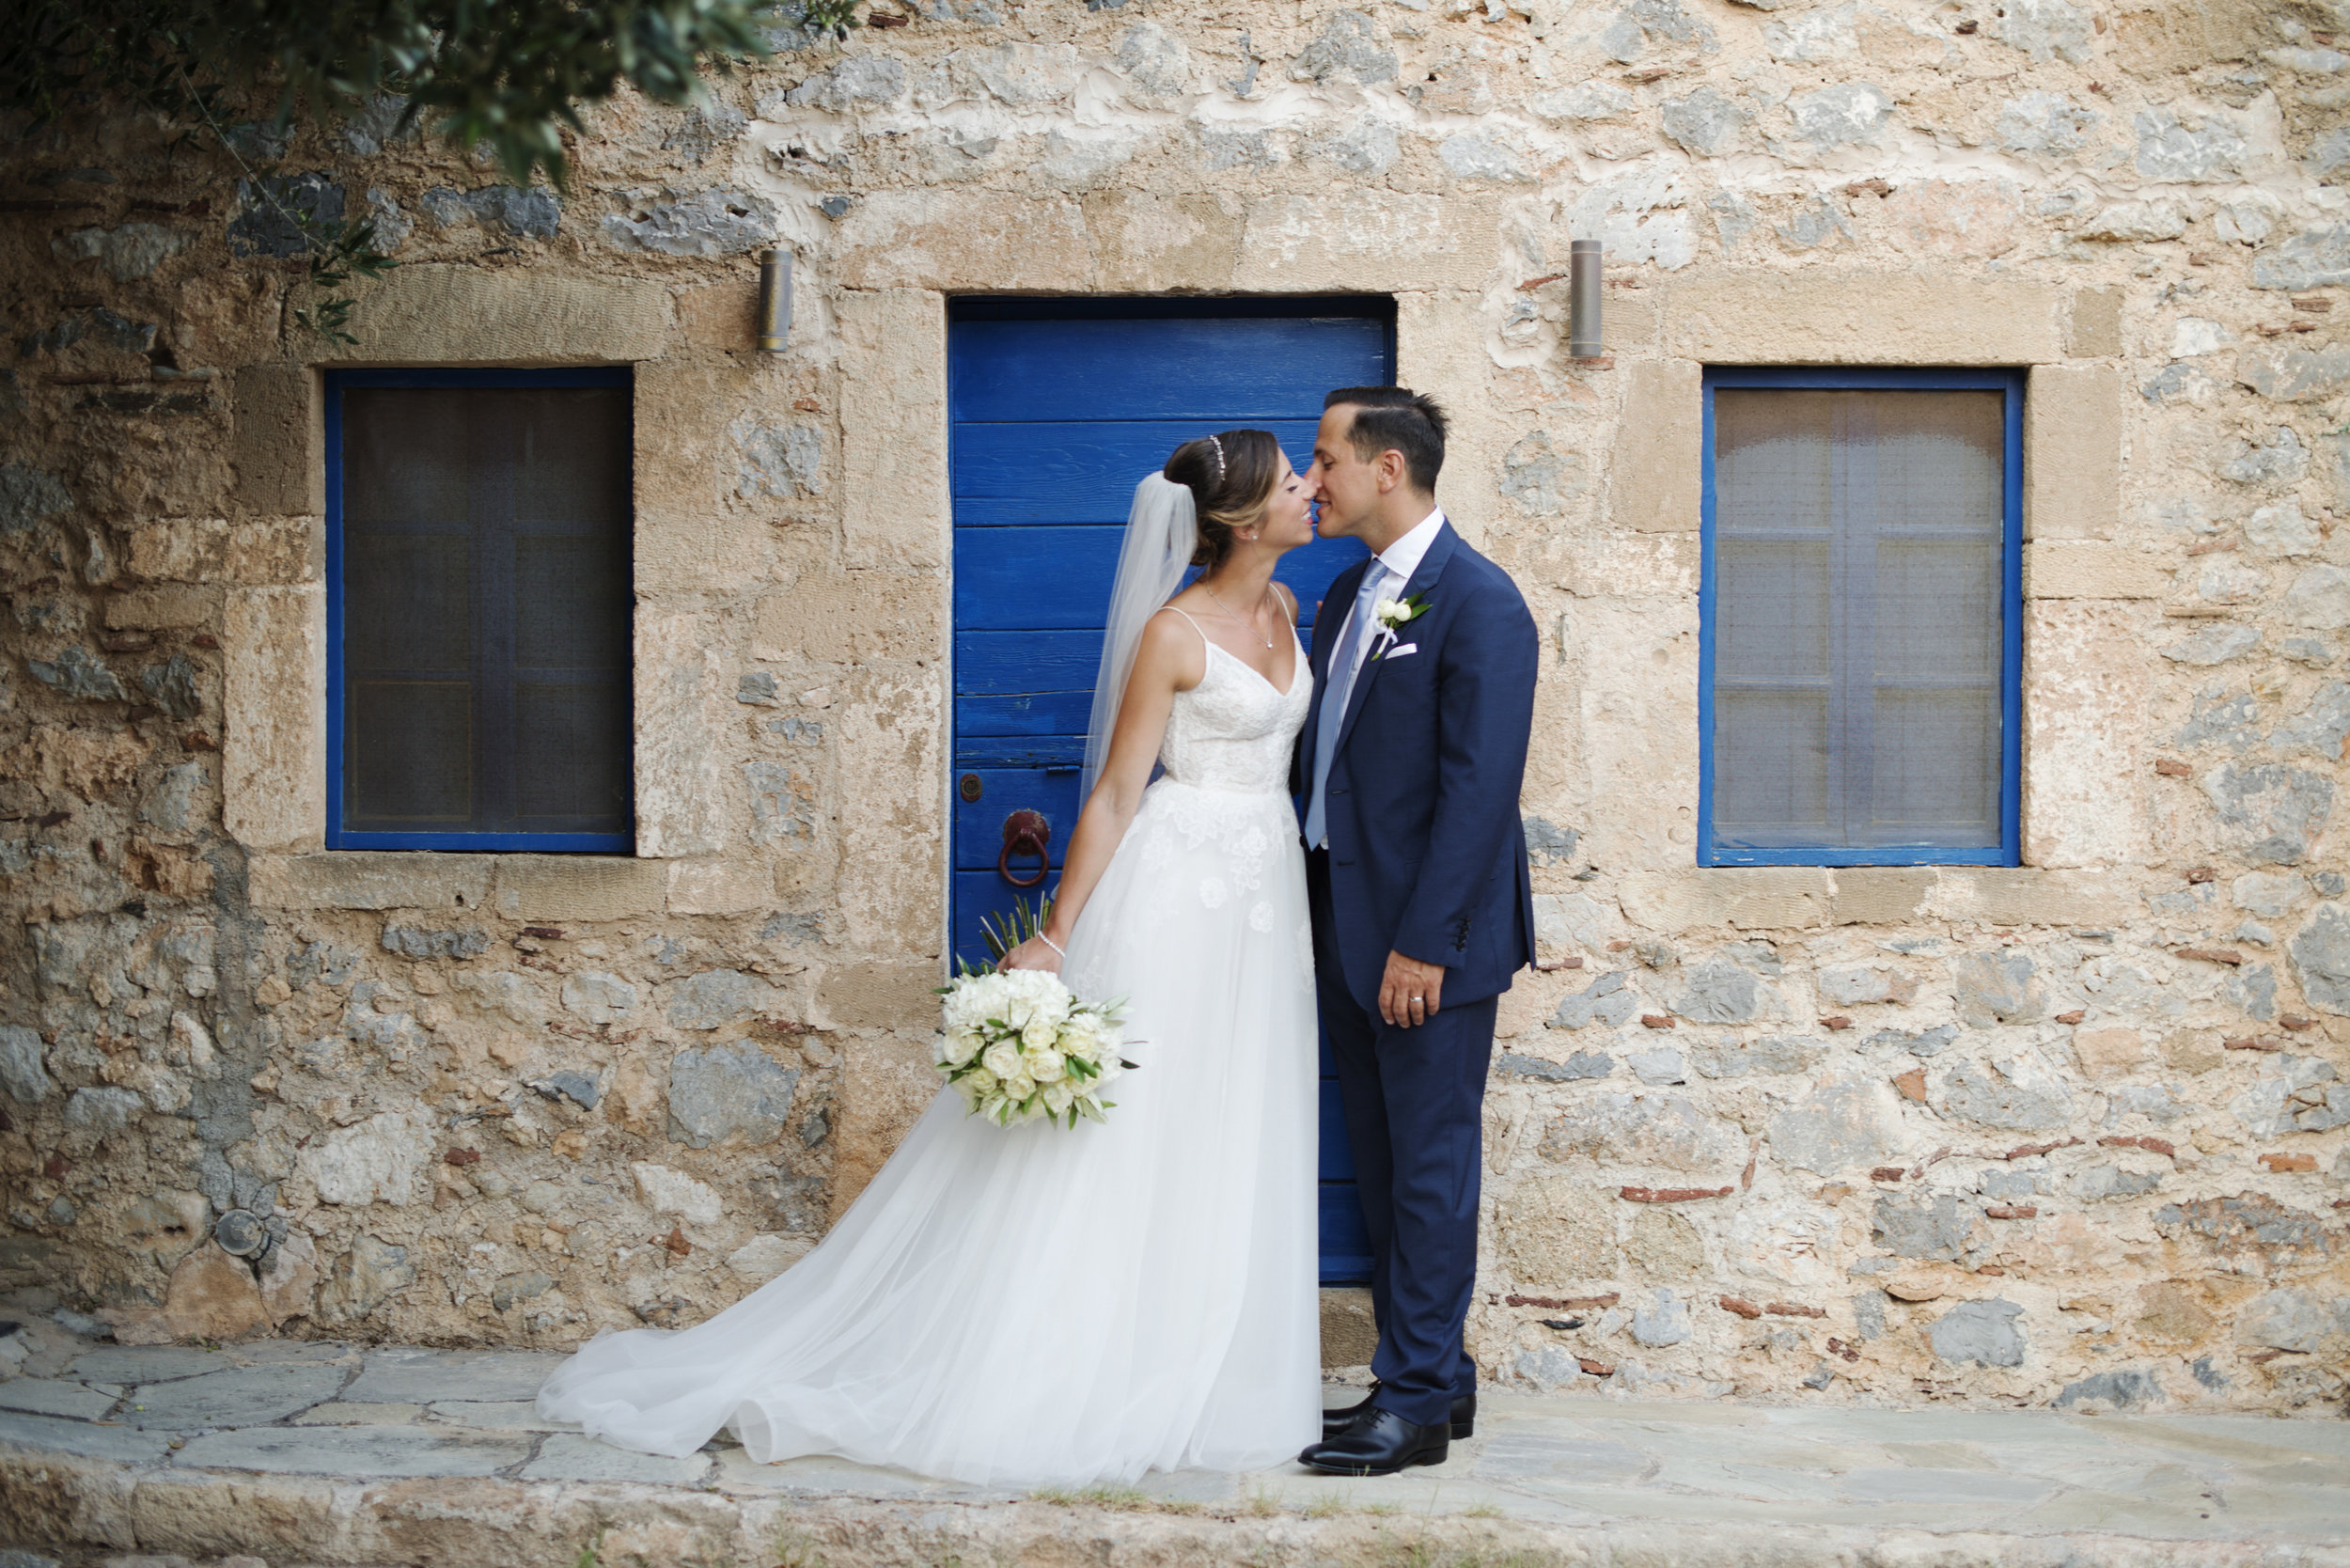 RosewoodWeddingPhotos-DestinationWeddingPhotographer-Greece-Monemvasia-DestinationWedding-WeddingsinGreece-GreekWedding-GreekOrthodoxWedding-BlueDoor